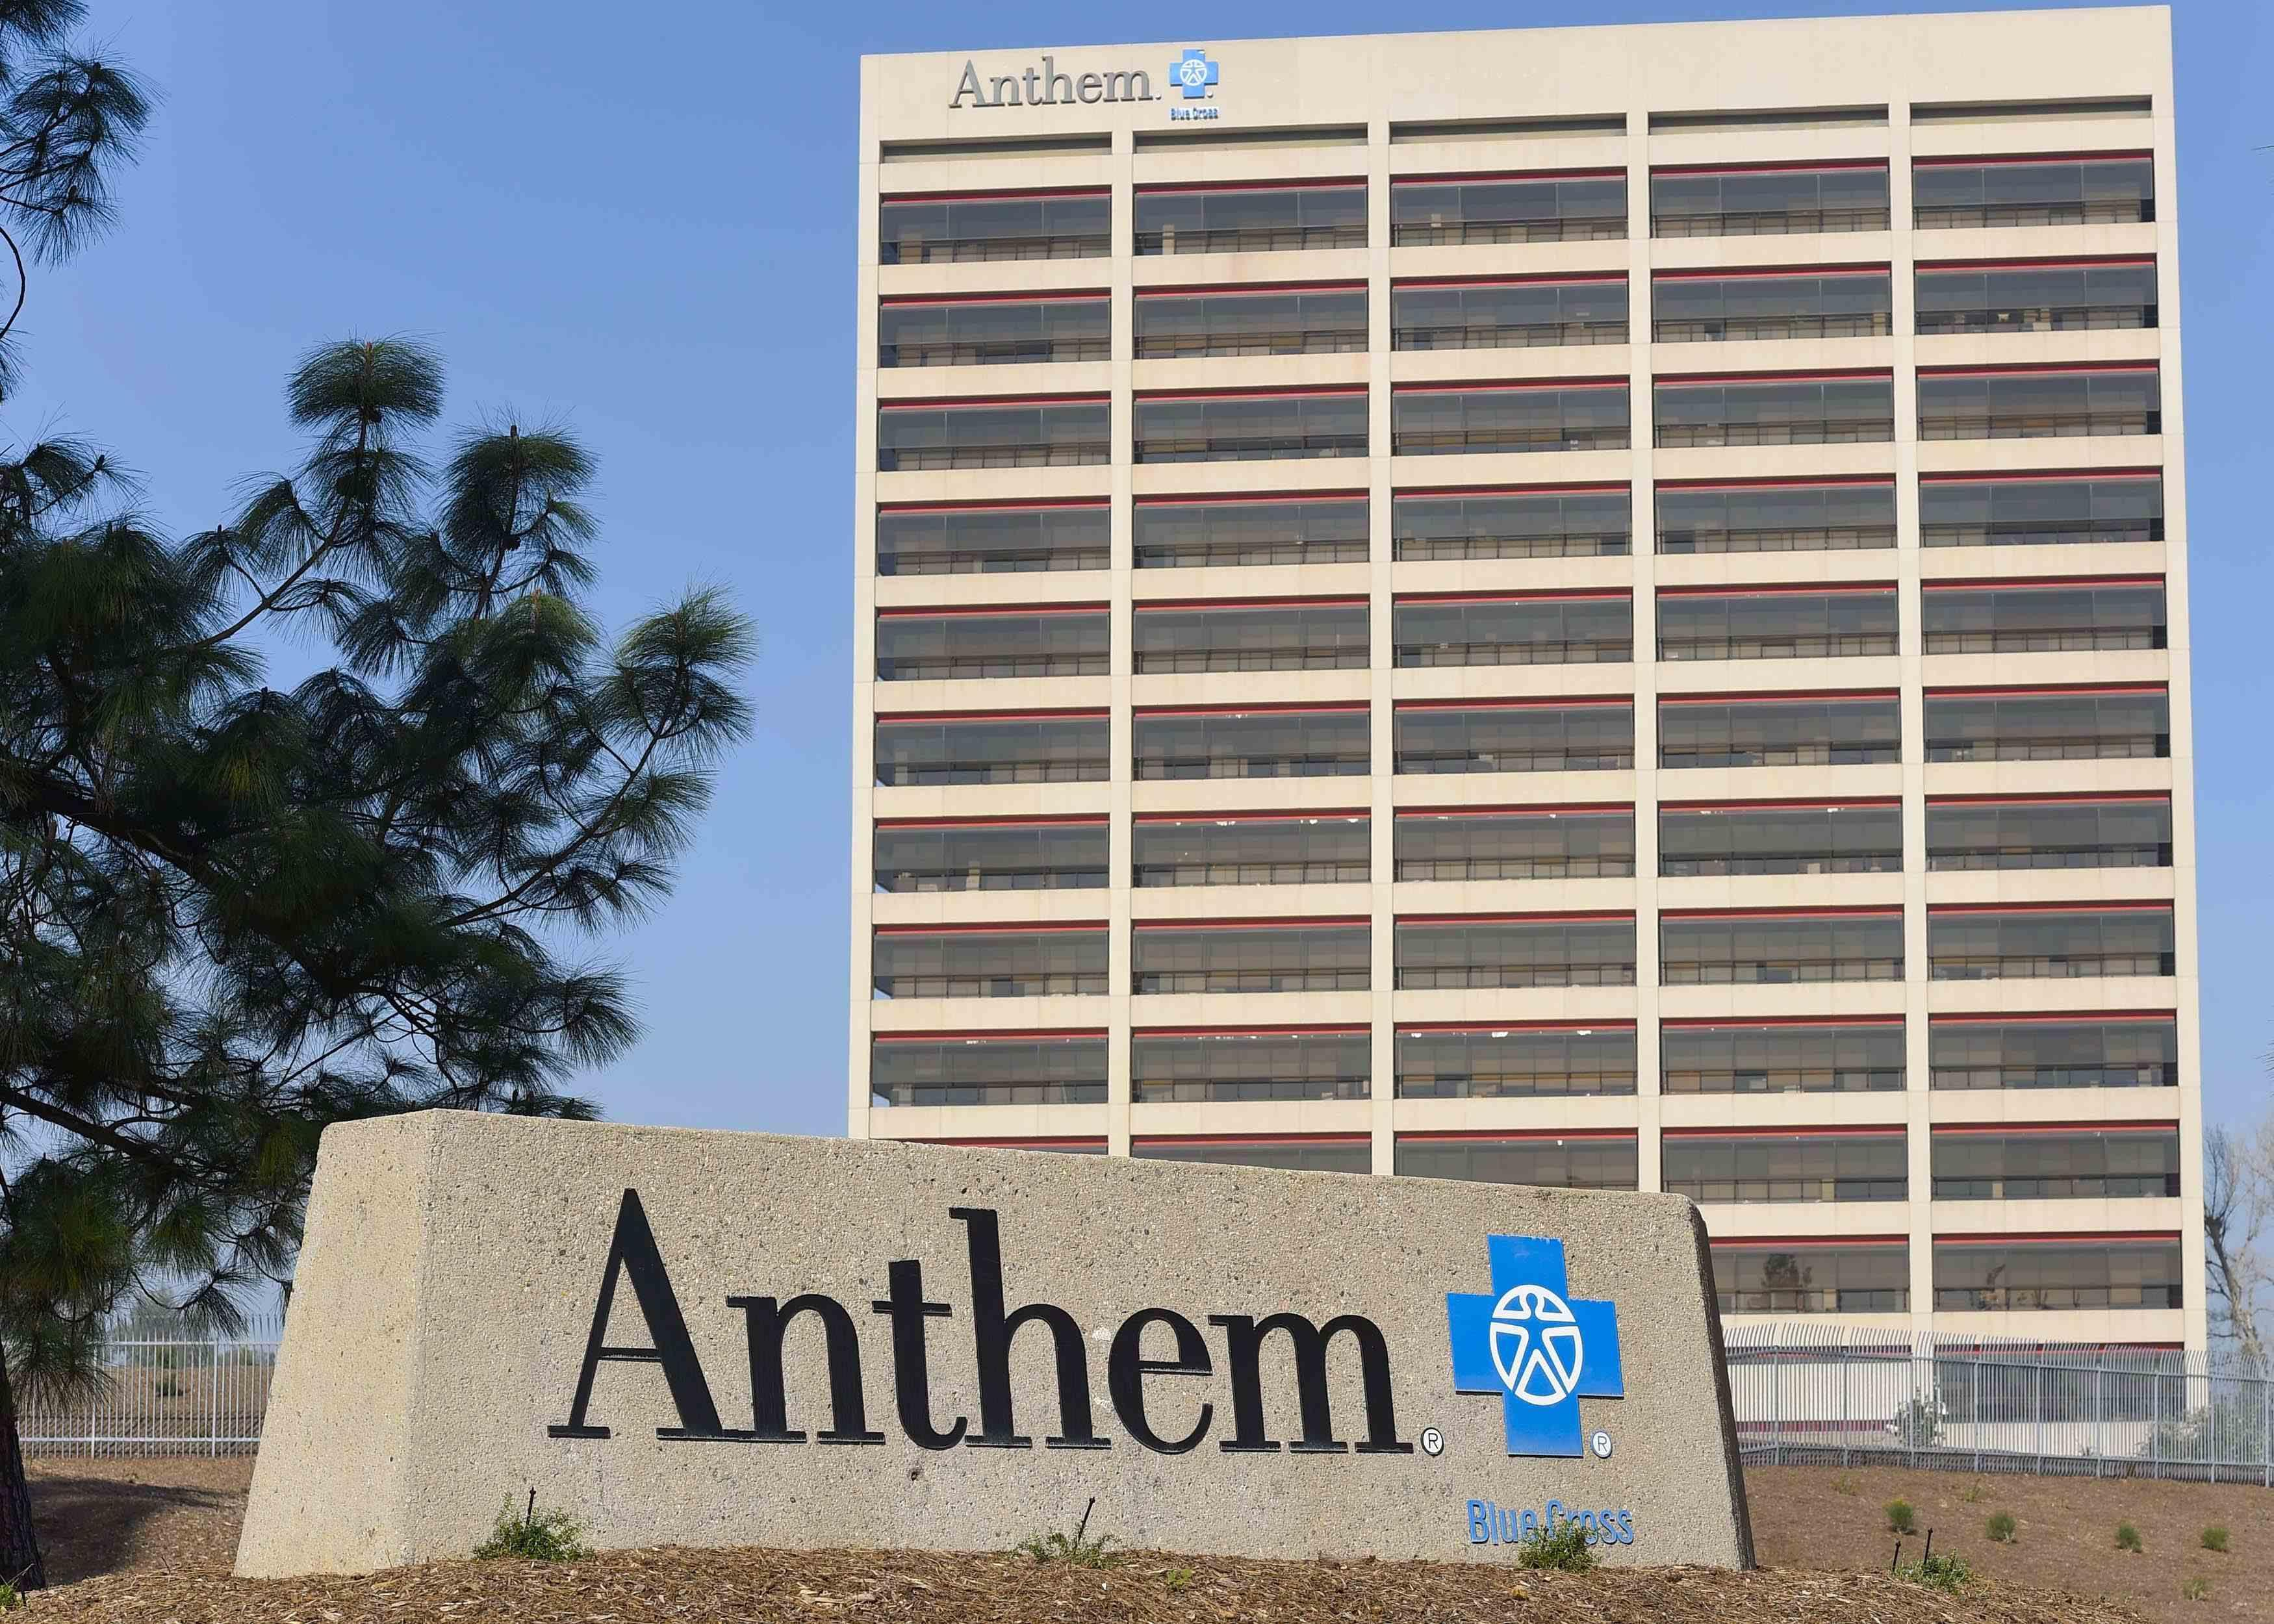 China role in Anthem hack suspected